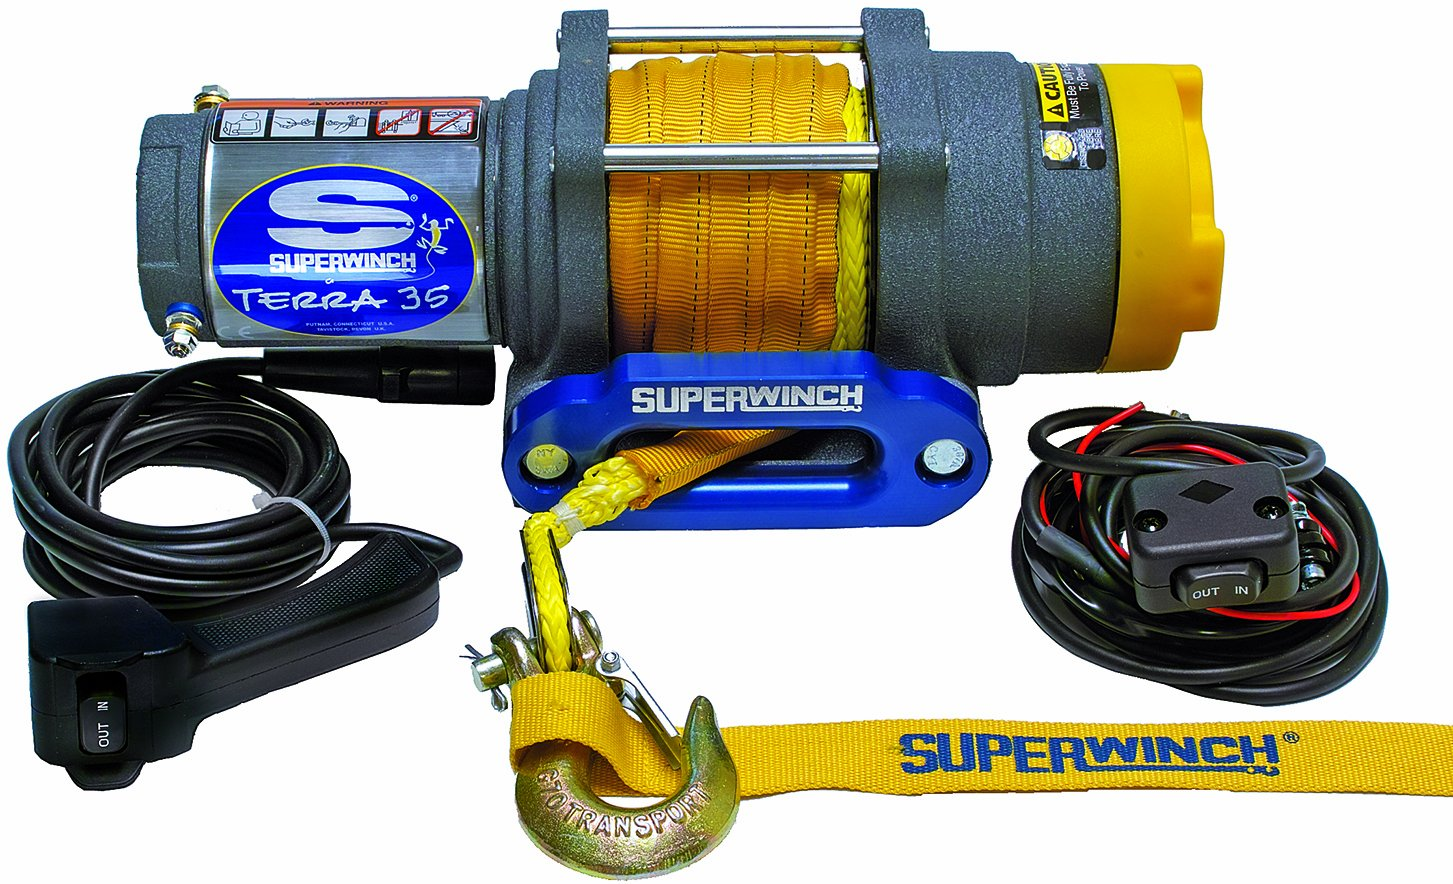 Superwinch 1135230 Terra 35 3500lbs/1591kg single line pull with hawse, handlebar mnt toggle, handheld remote, and synthetic rope by Superwinch